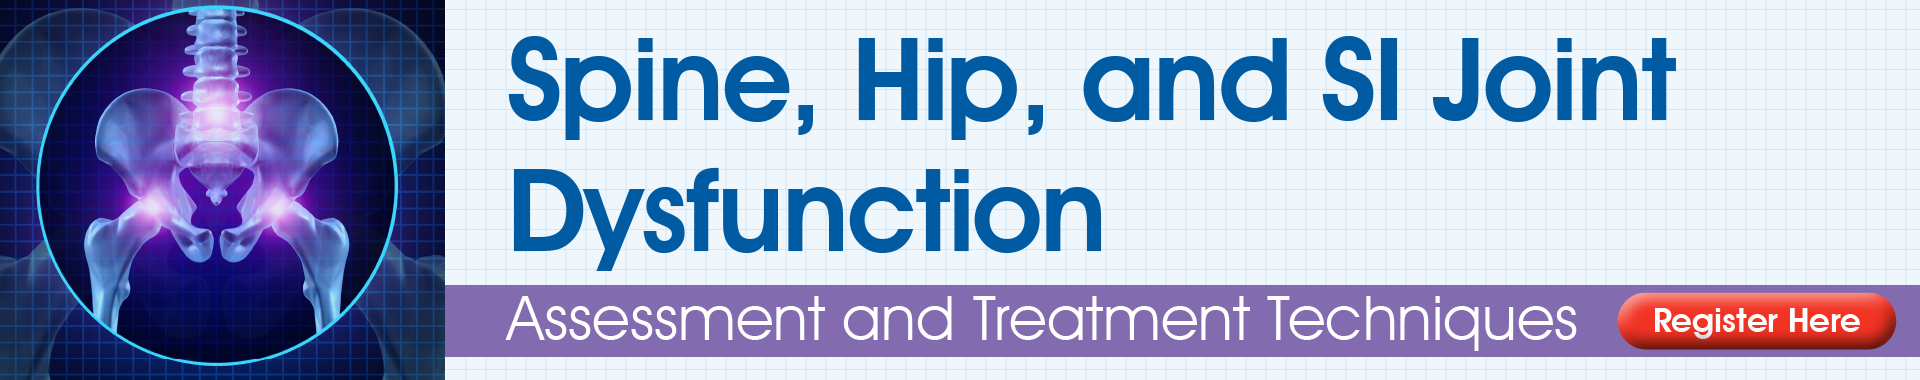 Spine, Hip, and SI Joint Dysfunction: Assessment and Treatment Techniques